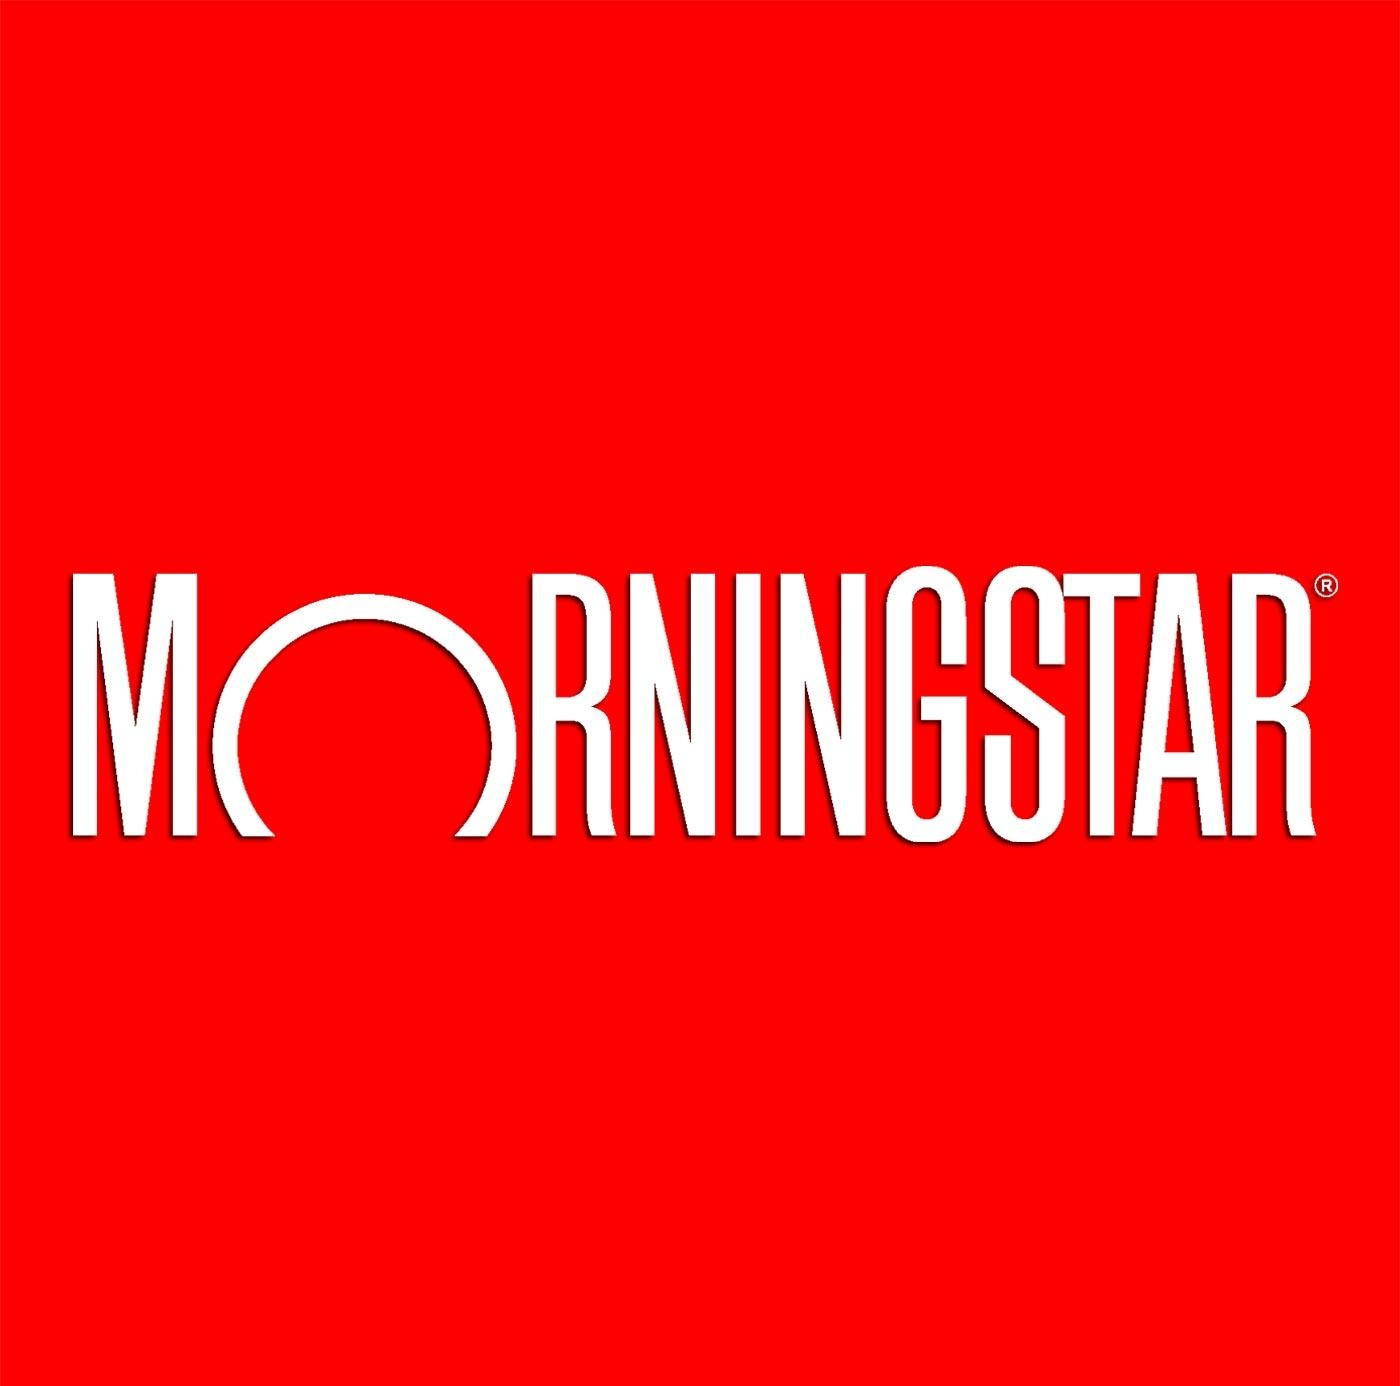 Логотип агентства Morningstar